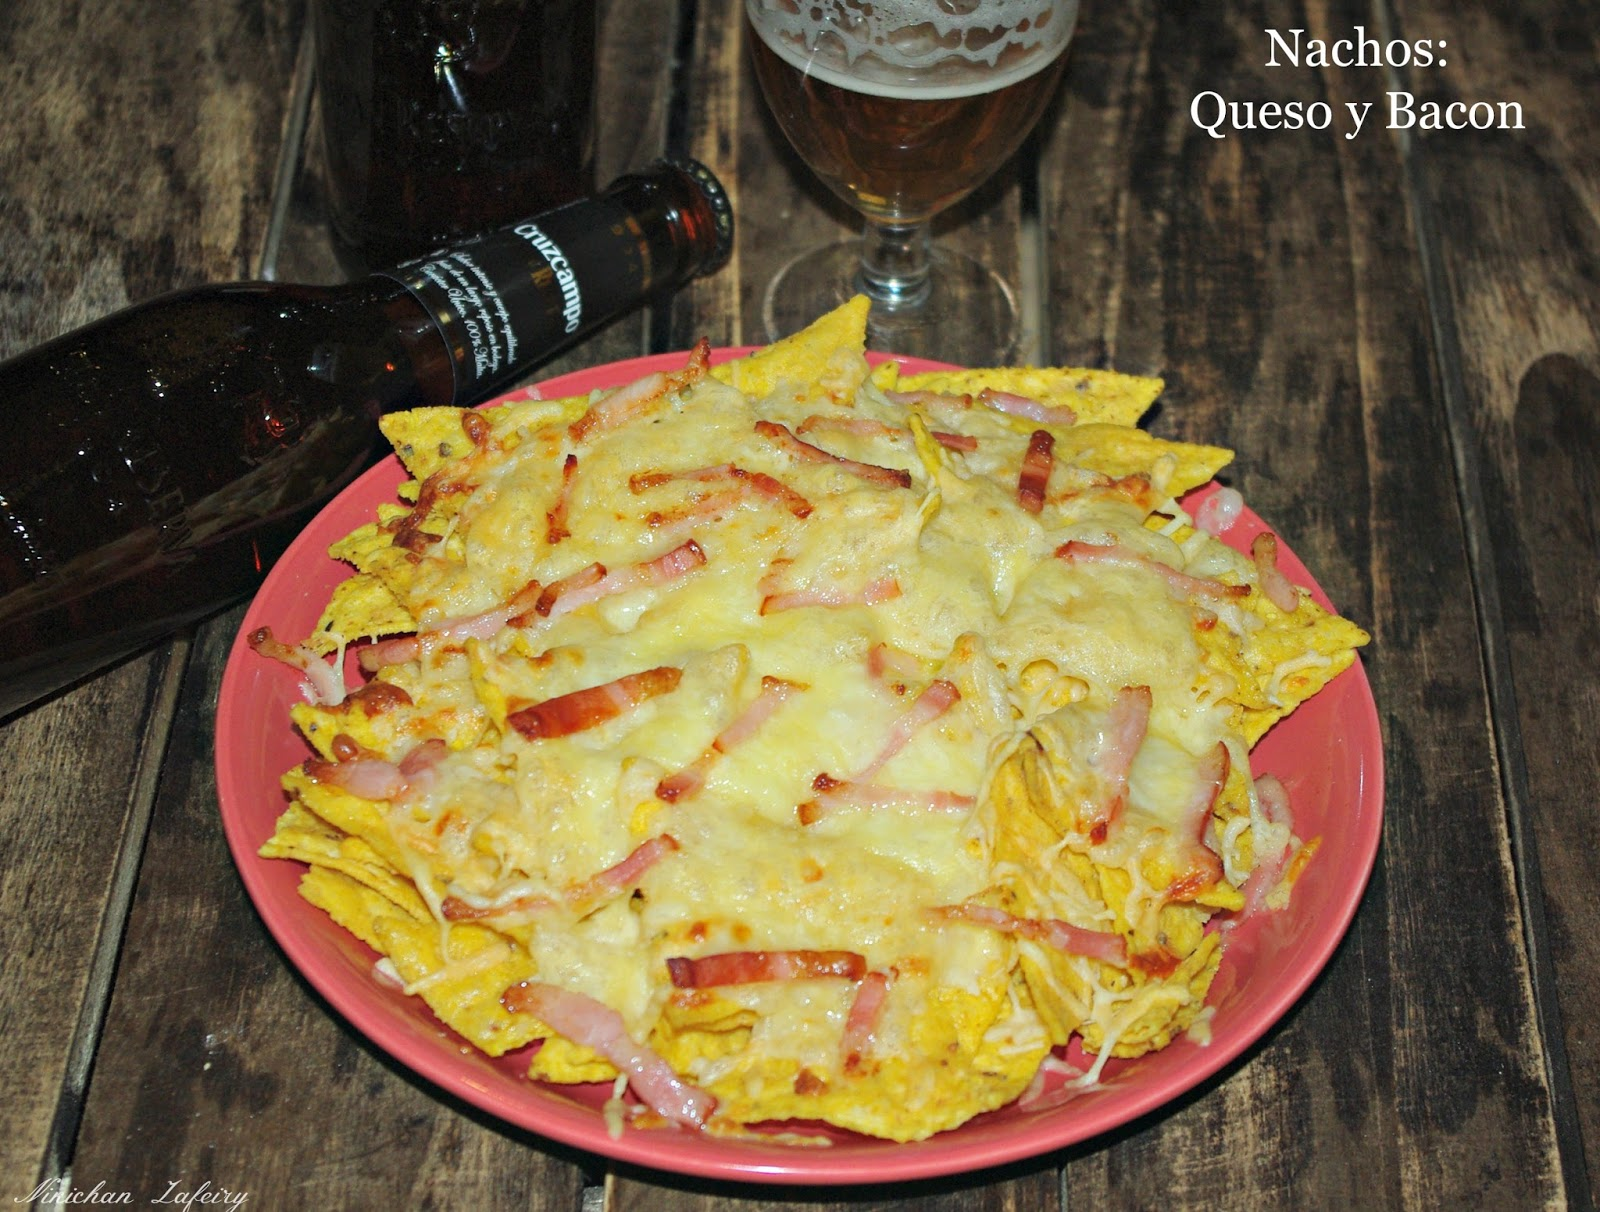 Cena para dos con nachos queso y bacon y quesadillas for Ideas para una cena de picoteo